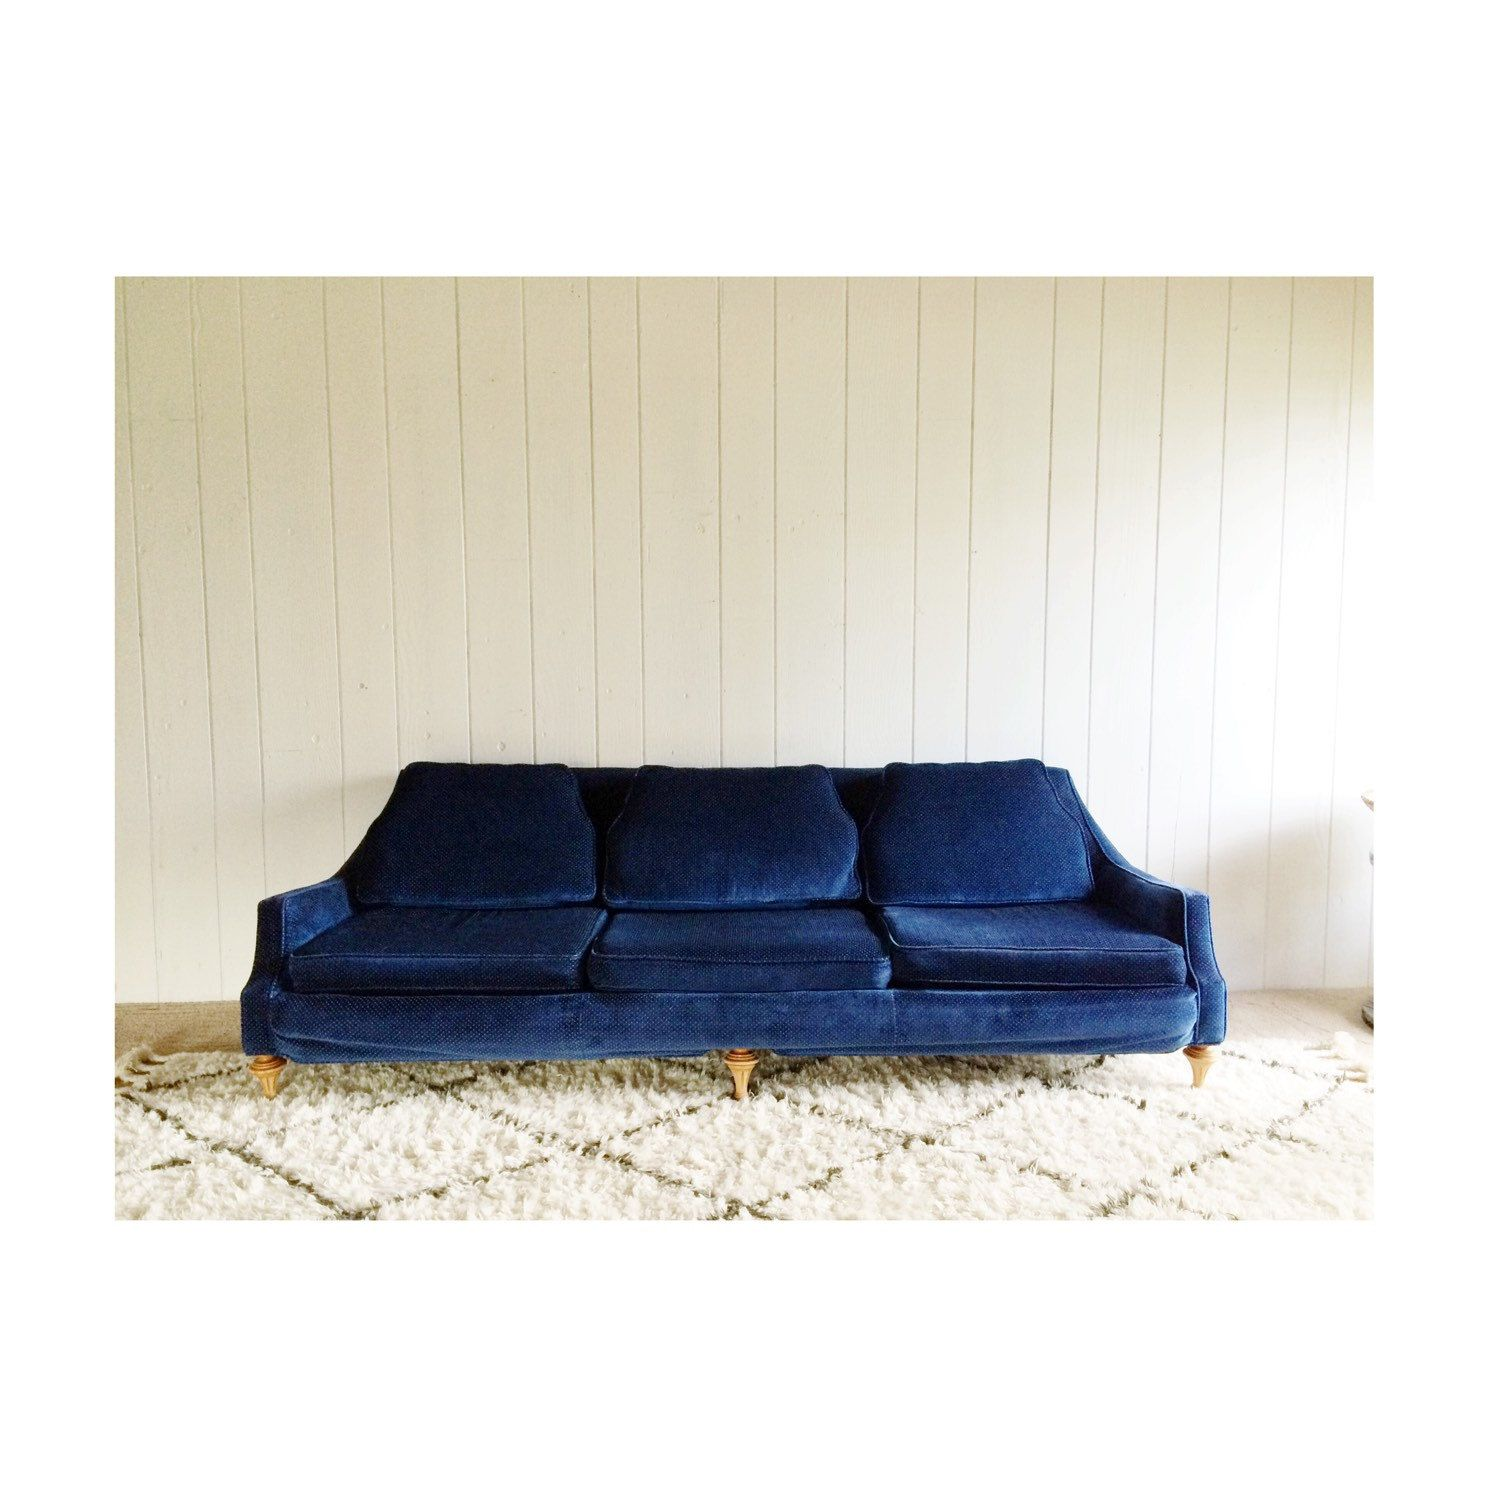 Retro Navy Blue Velvet Couch By MidCenturyTeak (750.00 USD)